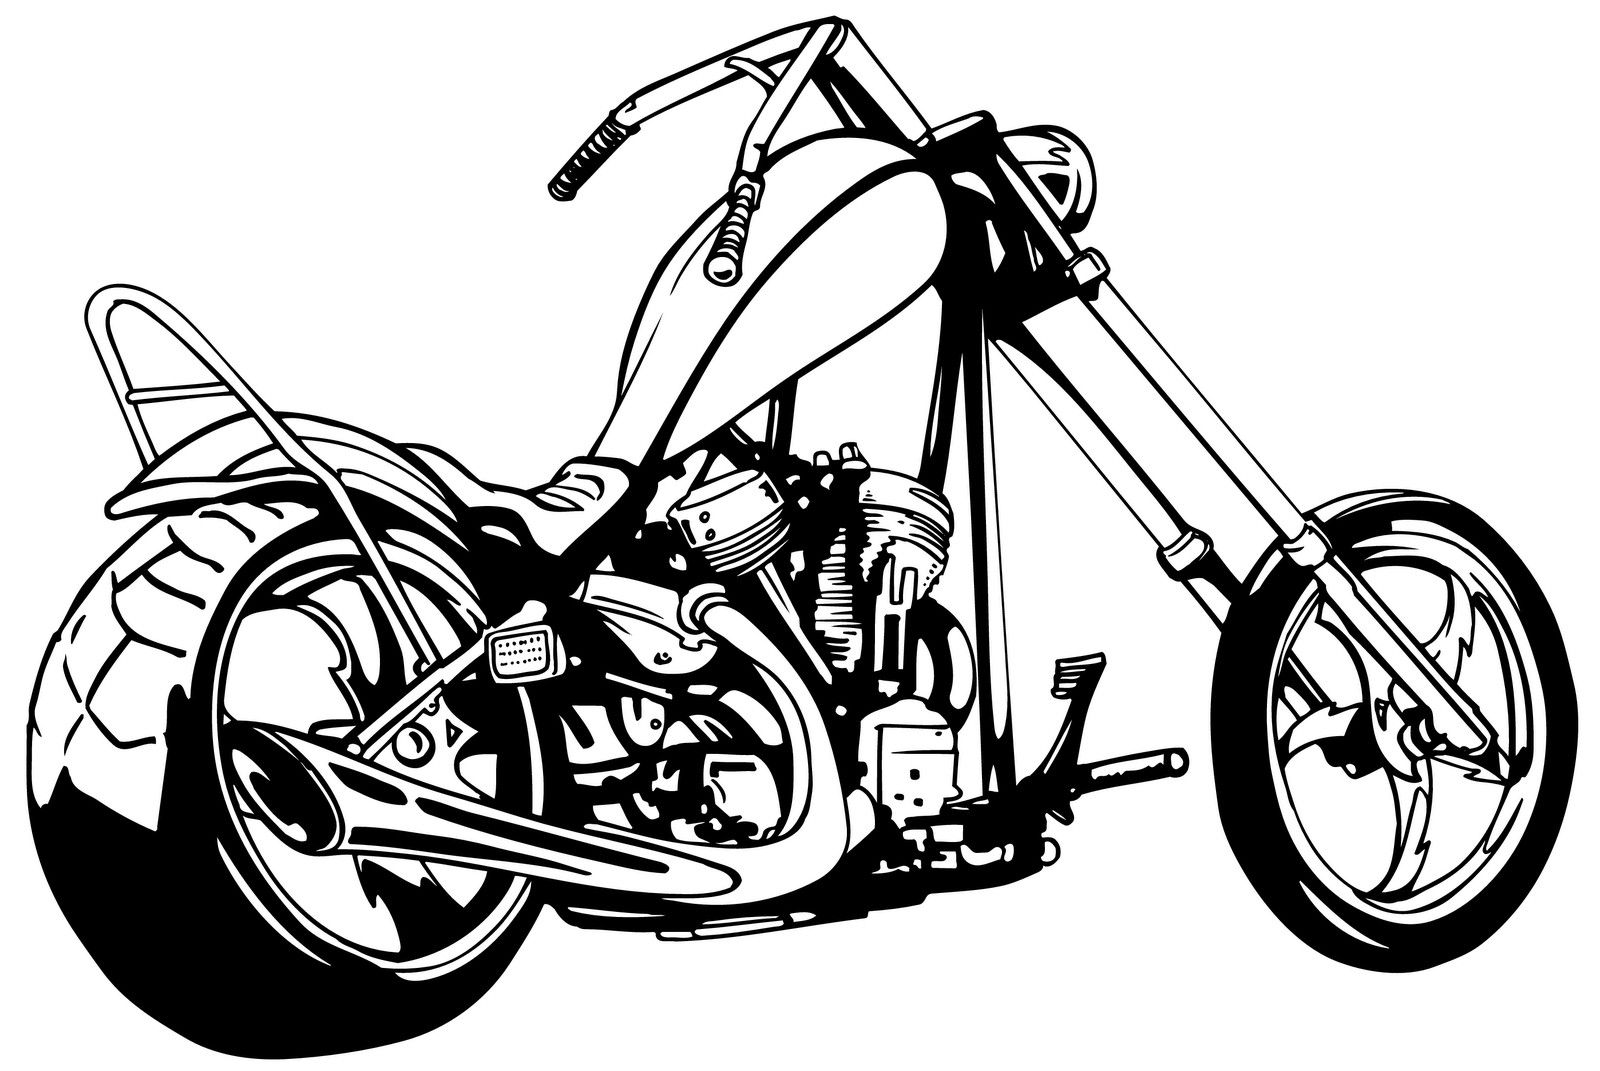 Harley davidson motorcycle clipart free graphic royalty free Chopper Motorcycle Silhouette B Free Lovely Harley Davidson | Cricut ... graphic royalty free